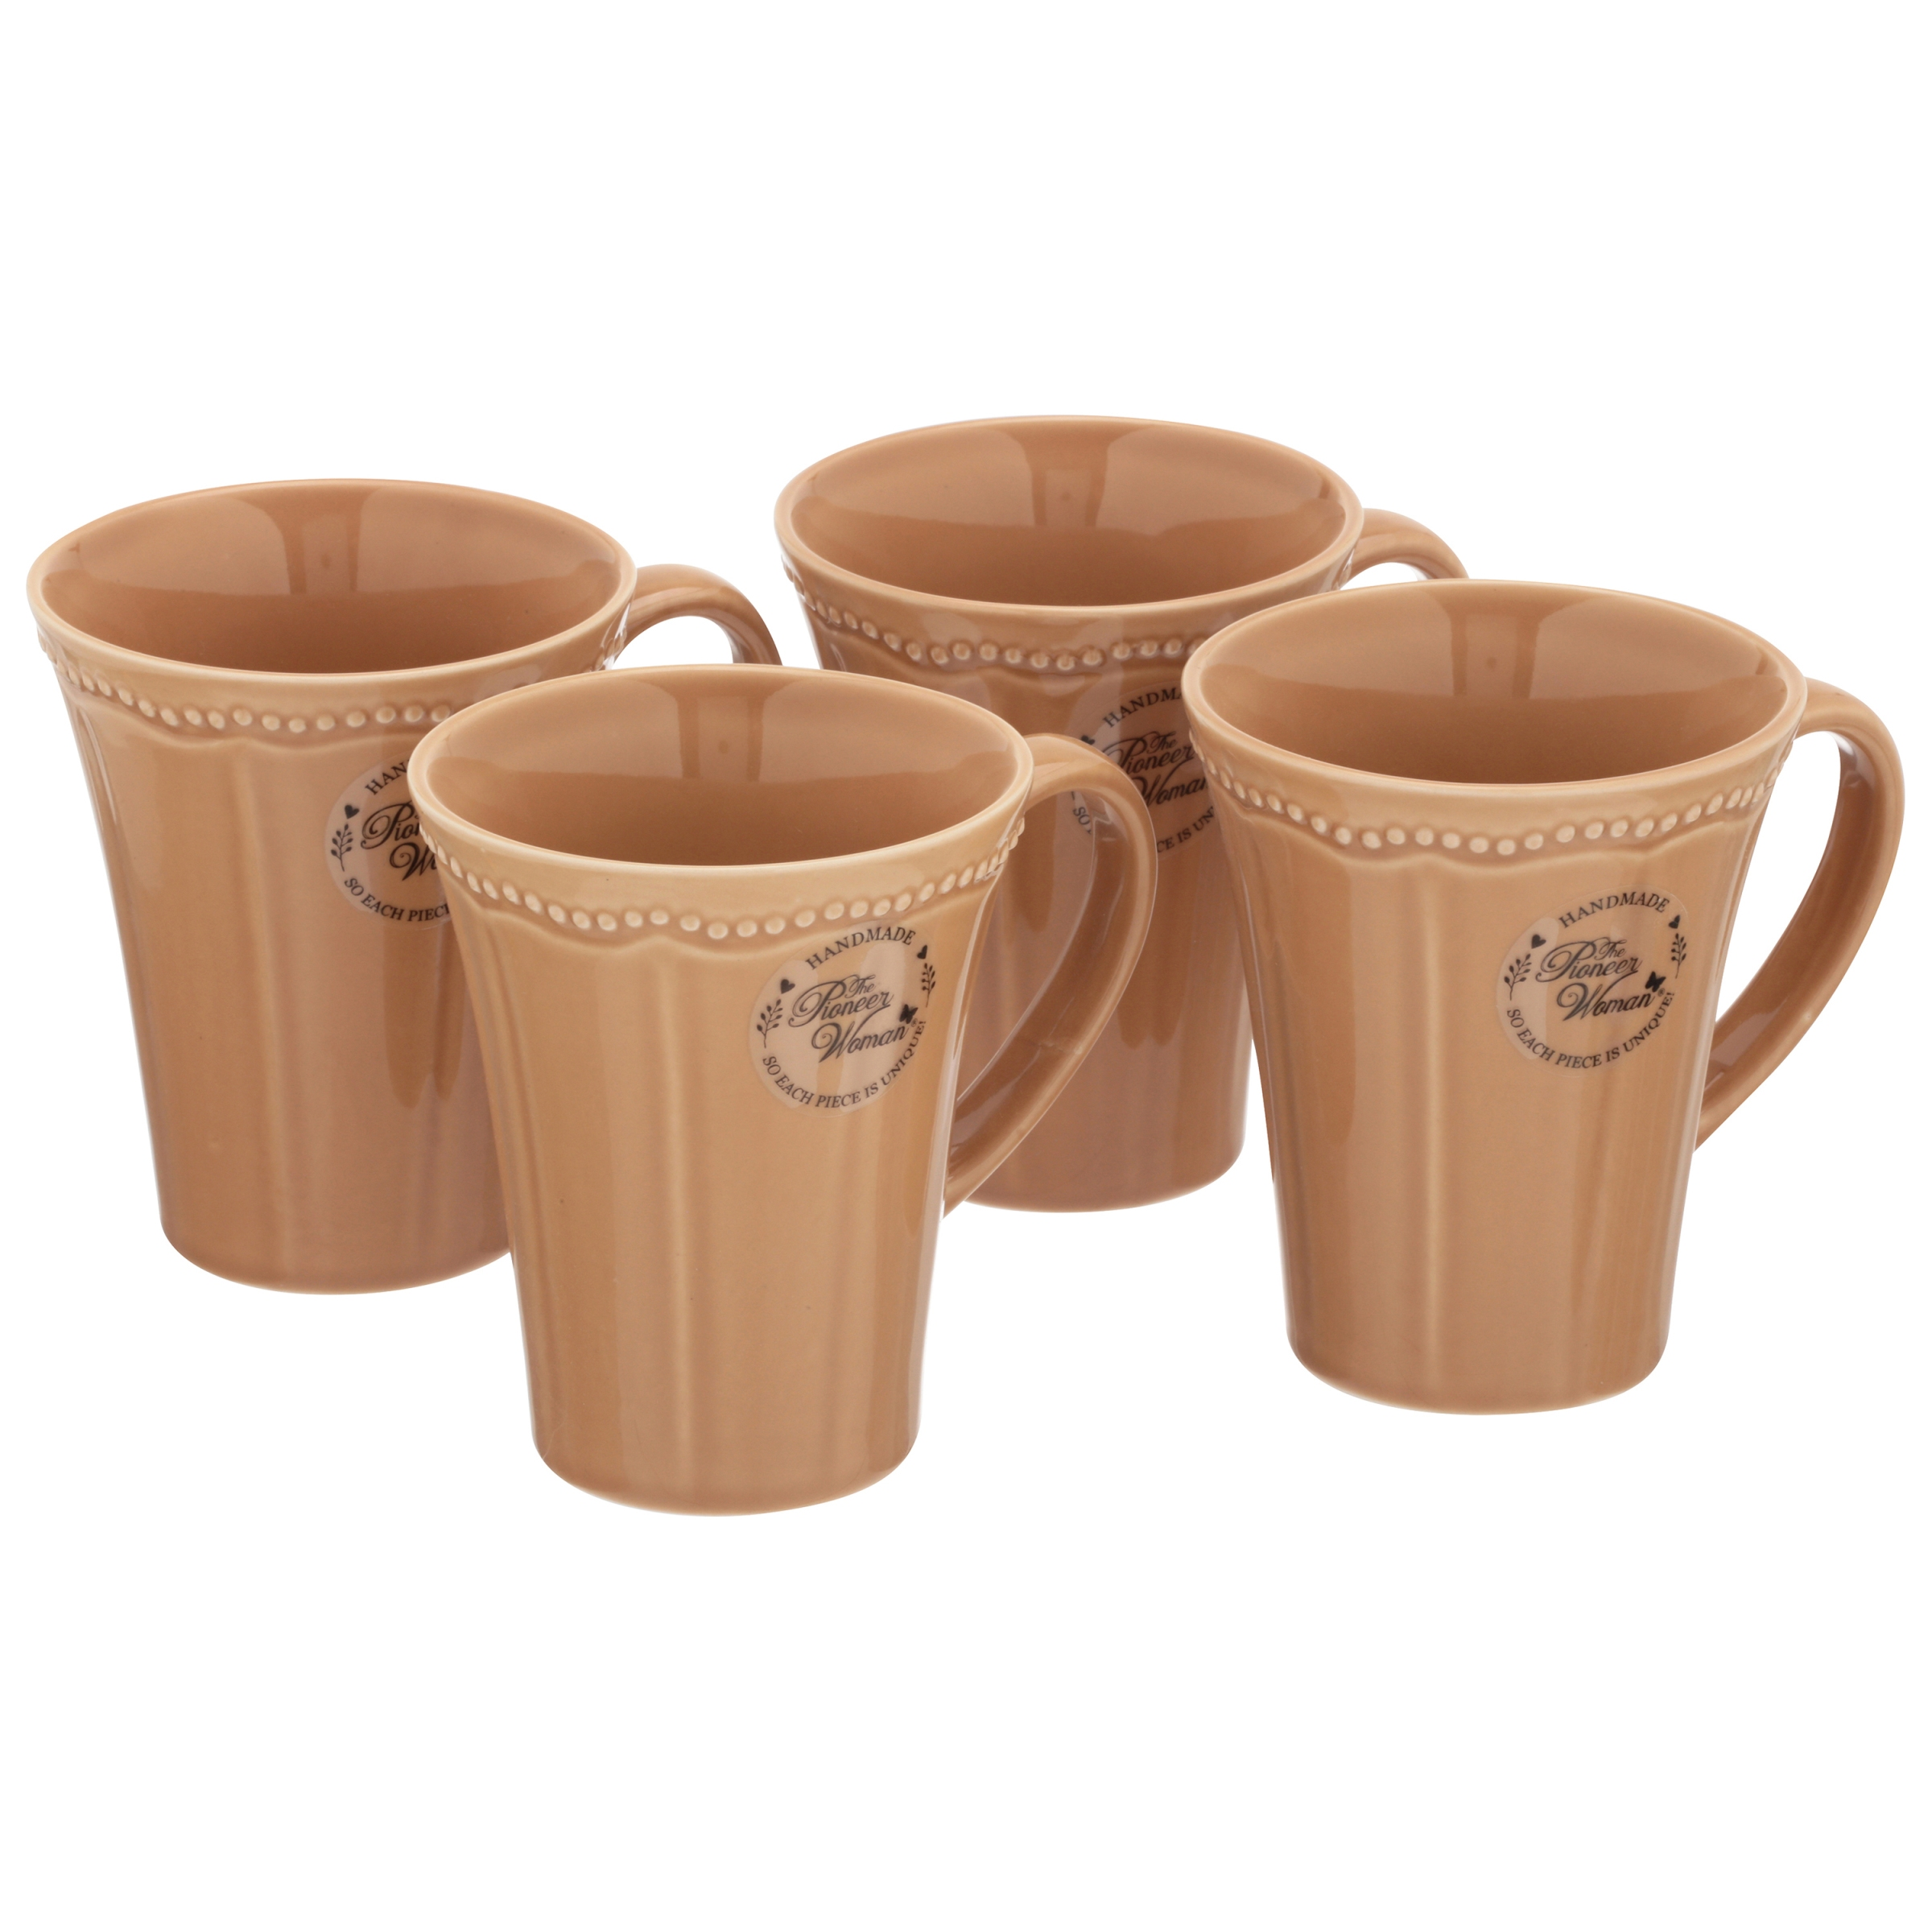 The Pioneer Woman Paige 4-Piece Transparent Glaze Mug Set